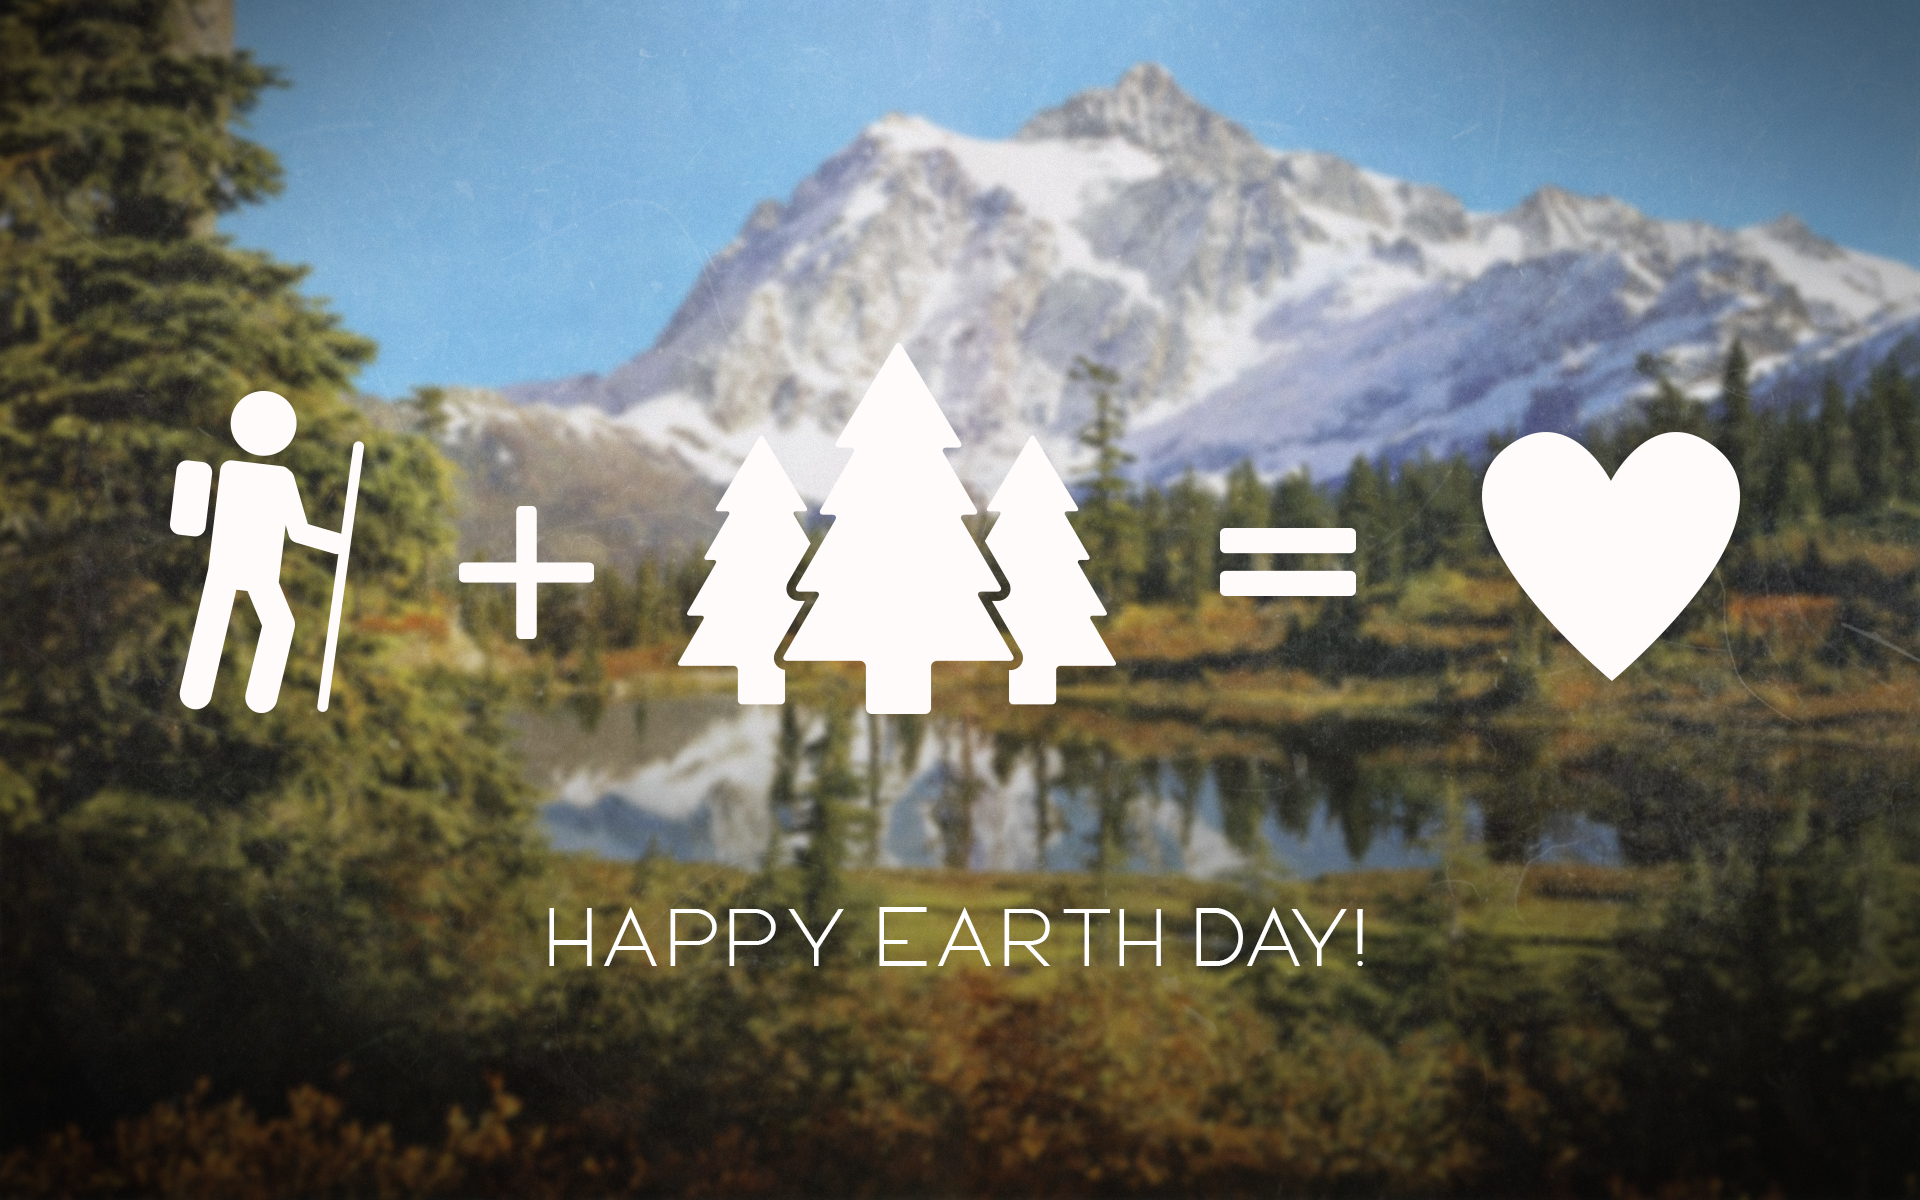 Happy-Earth-Day-by-Brittany-Deighton1